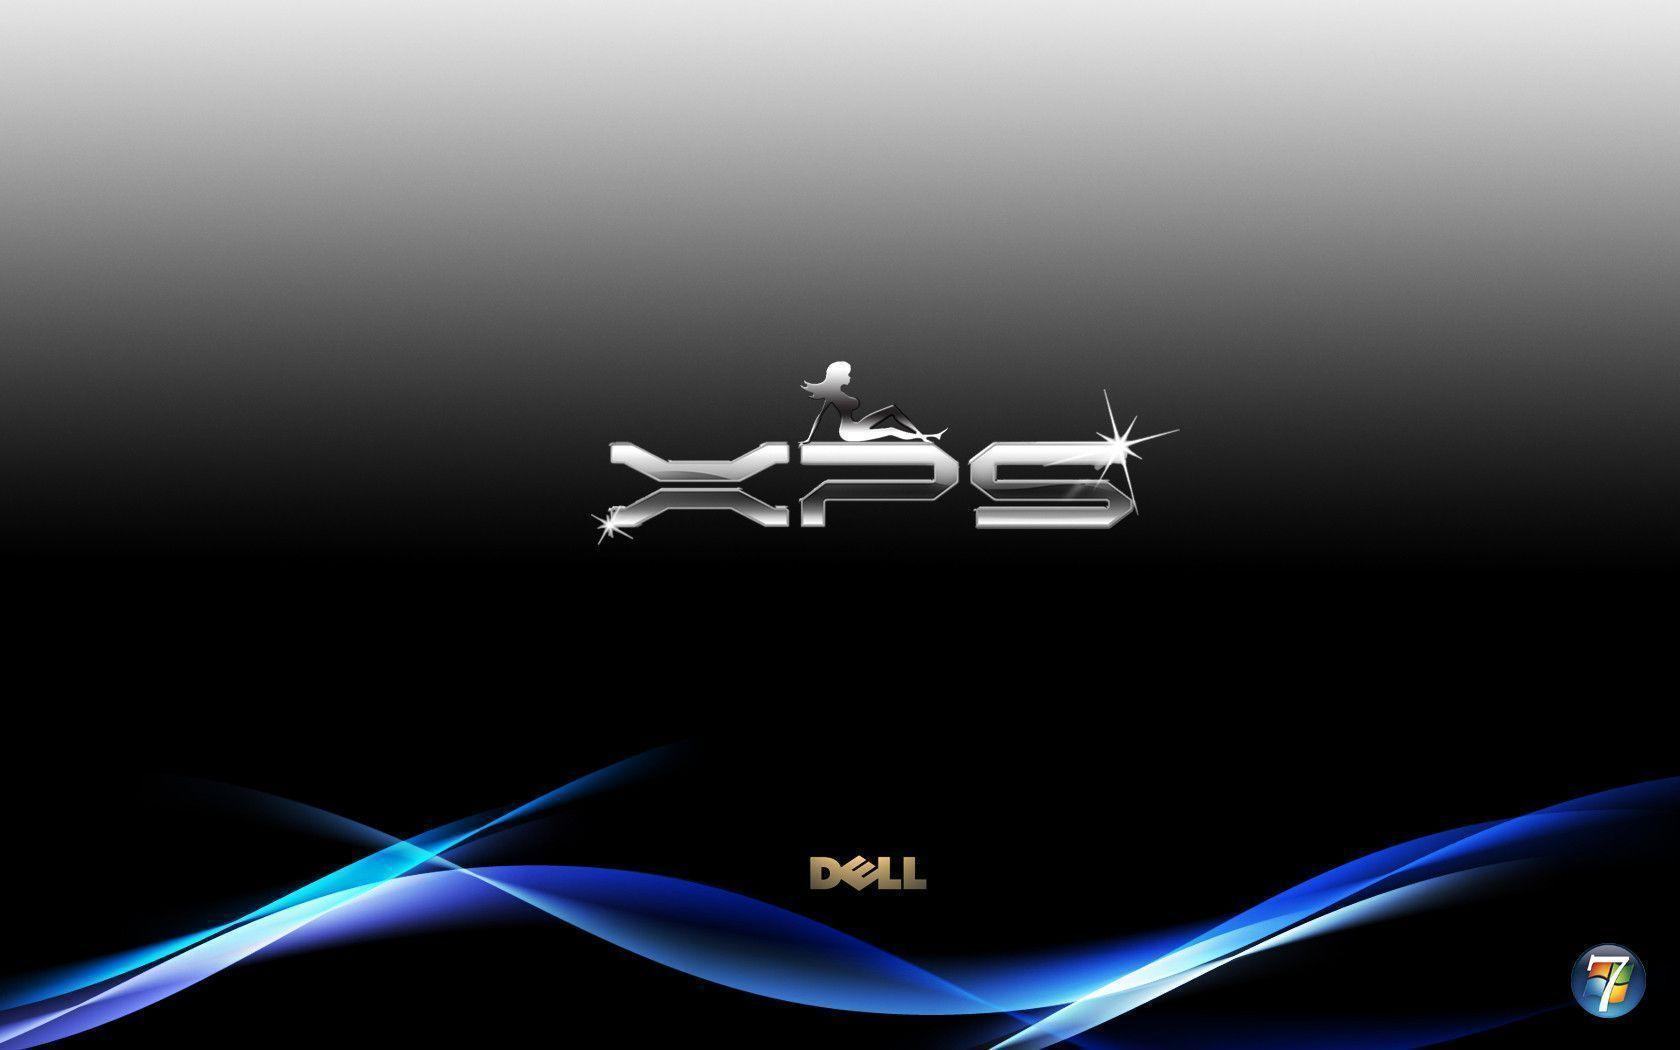 Related Pictures Dell Xps Wallpaper Dell Desktop Wallpaper Dell .